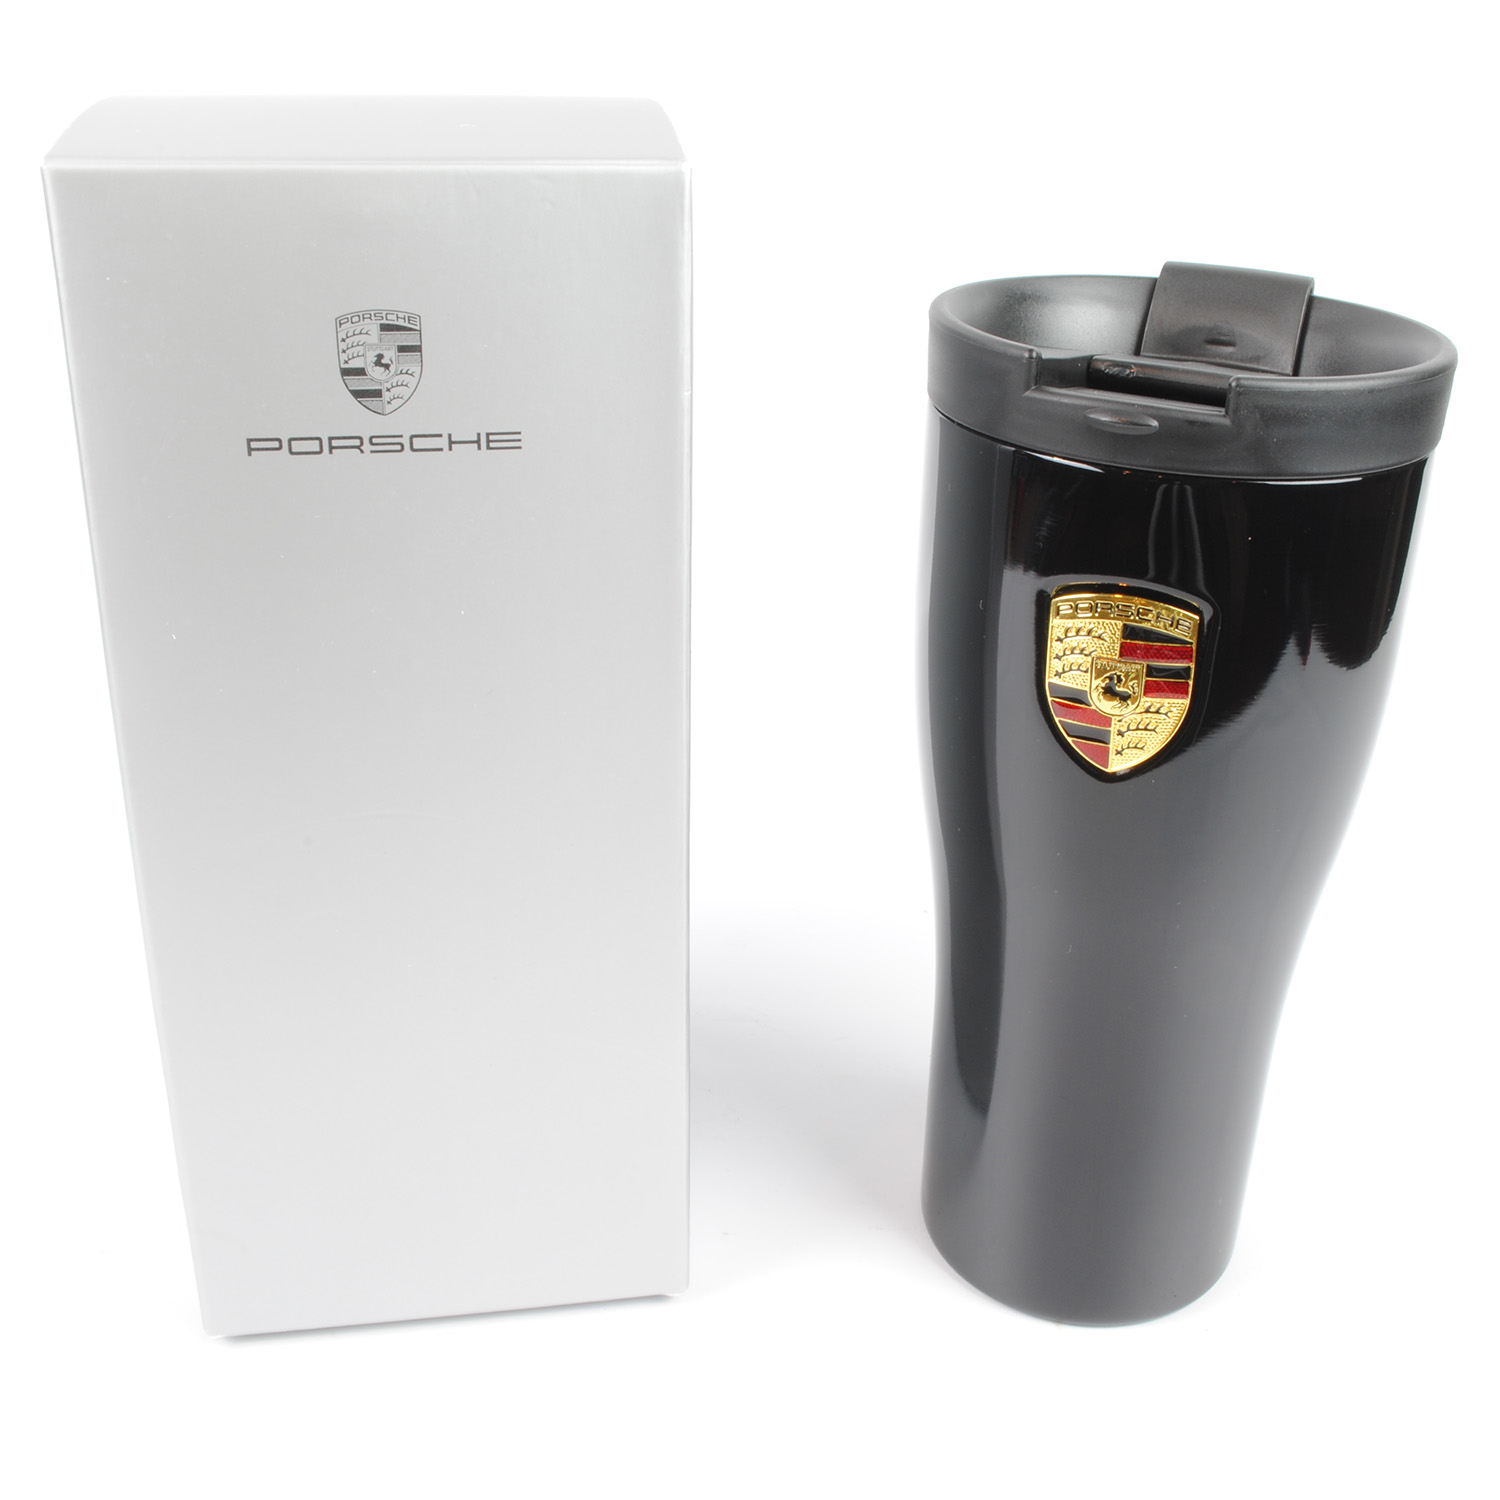 Porsche Brushed Stainless Steel Thermal Beaker with Crest